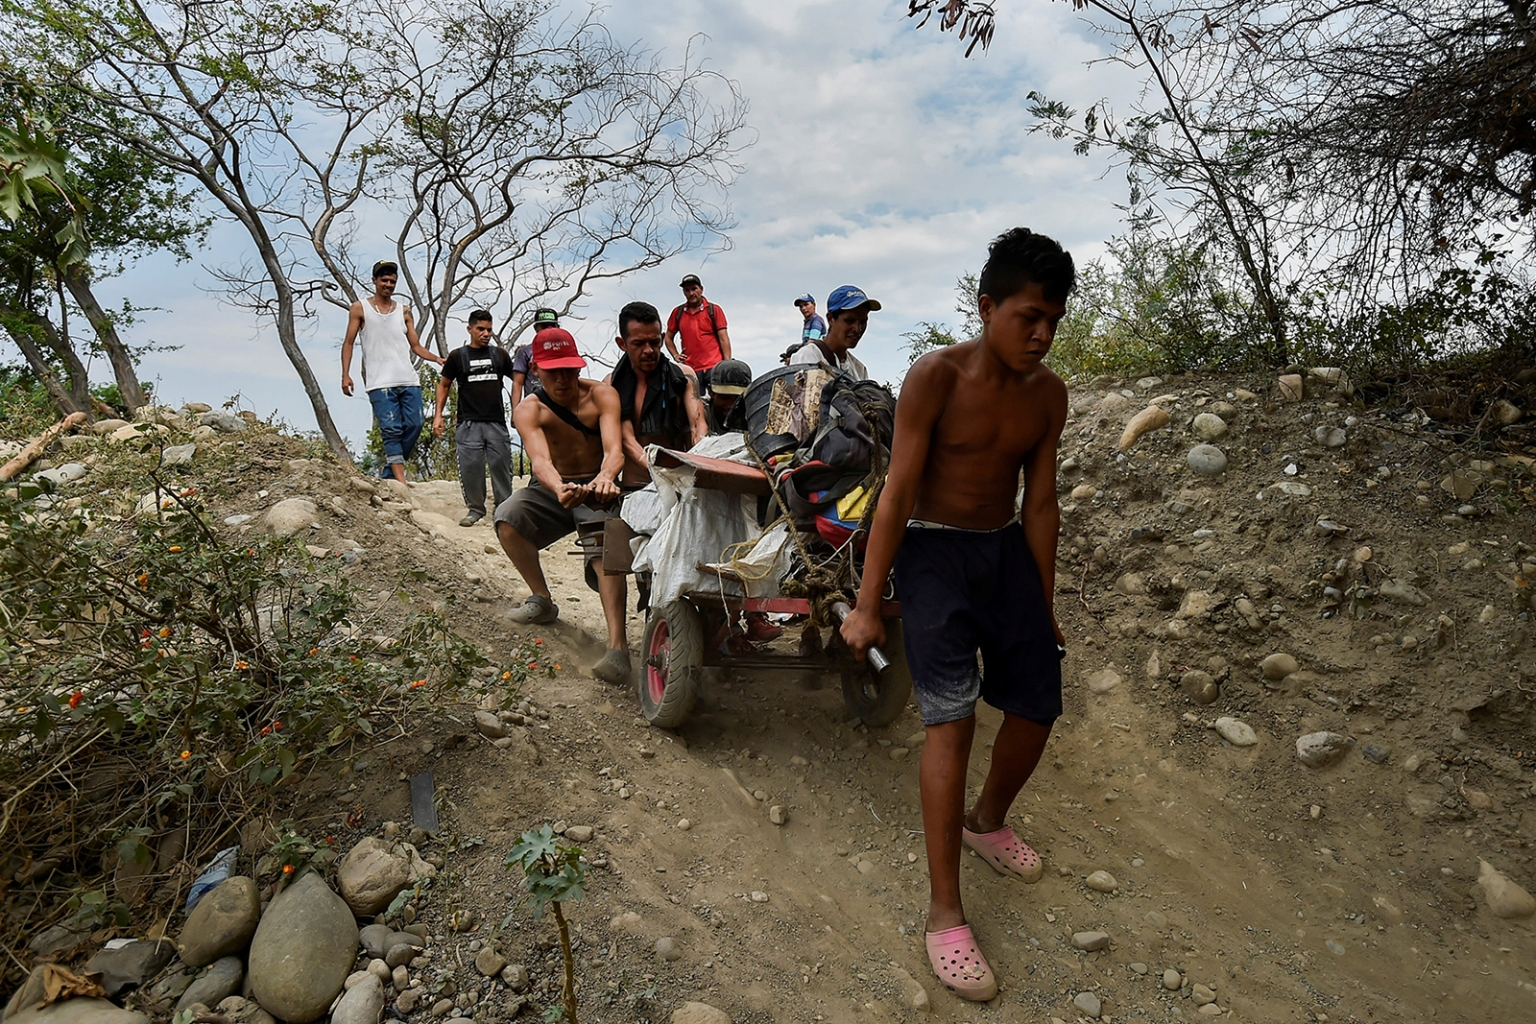 Youth transport scrap in a wheelbarrow along an illegal trail from San Antonio, Venezuela, to Cucuta, Colombia, on Feb. 27. The border remained closed on the Venezuelan side after opposition efforts to bring humanitarian aid into the country from Colombia descended into a bloody chaos. LUIS ROBAYO/AFP/Getty Images